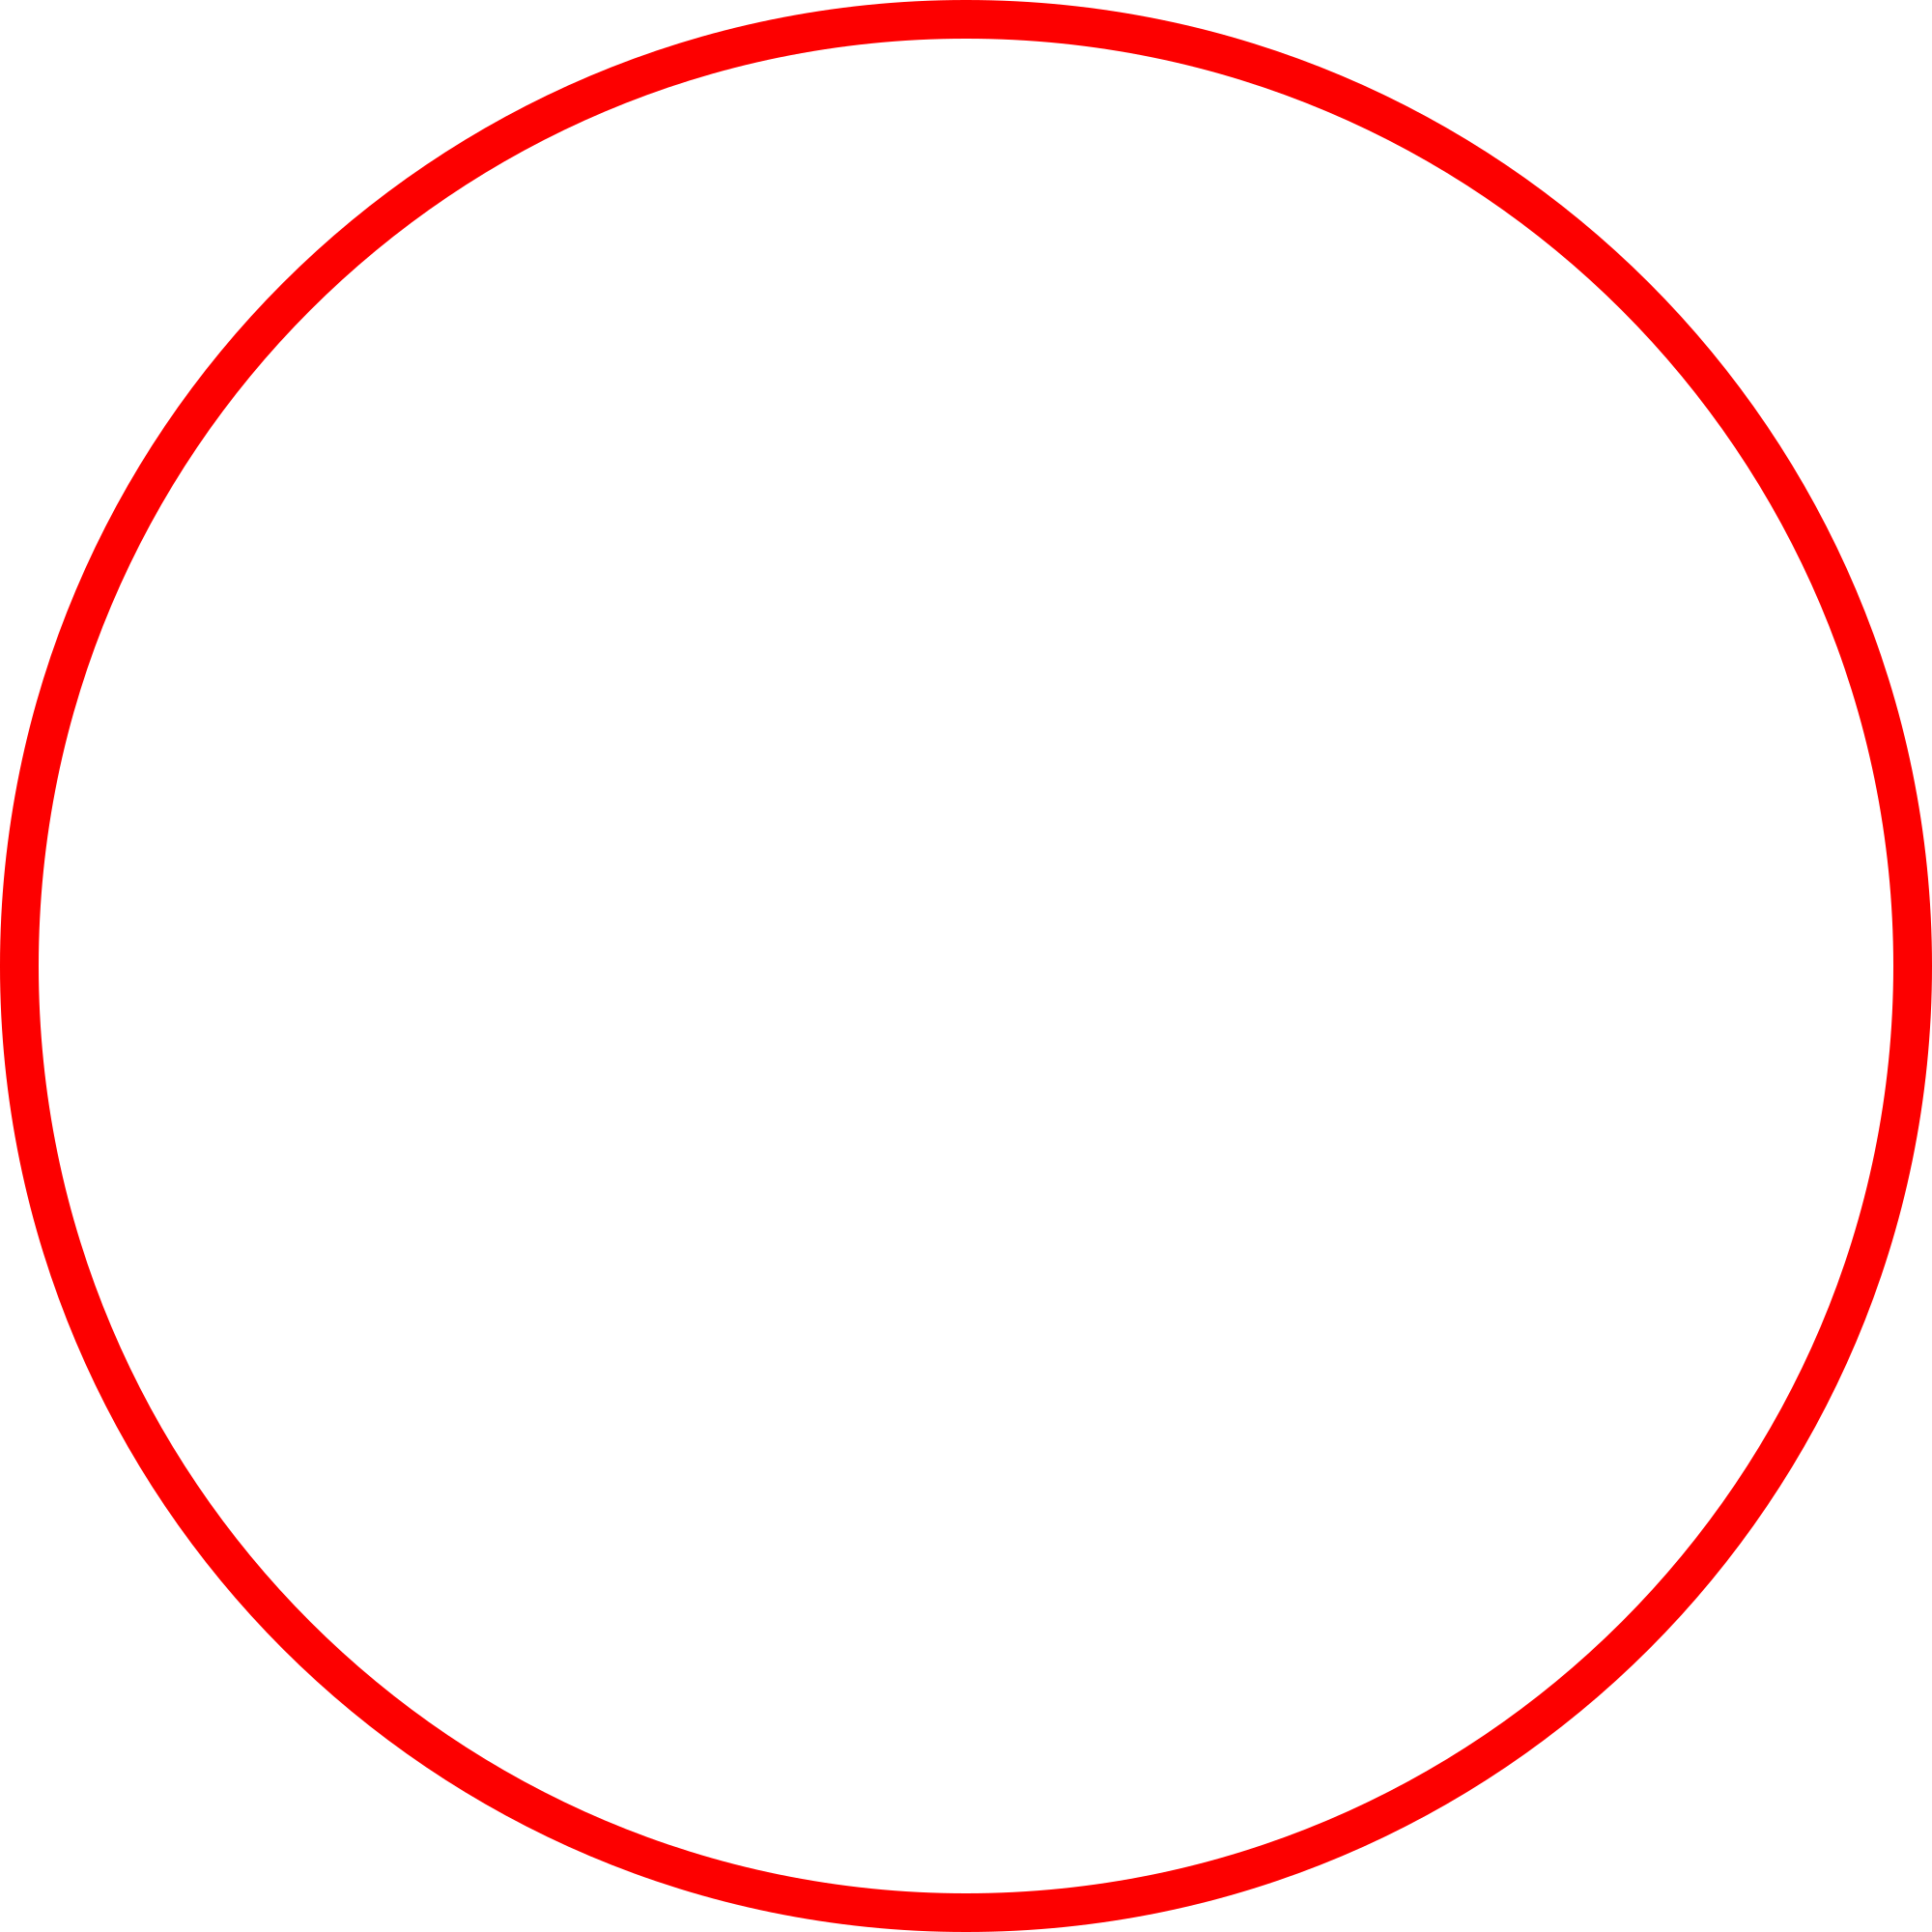 red dot icon png